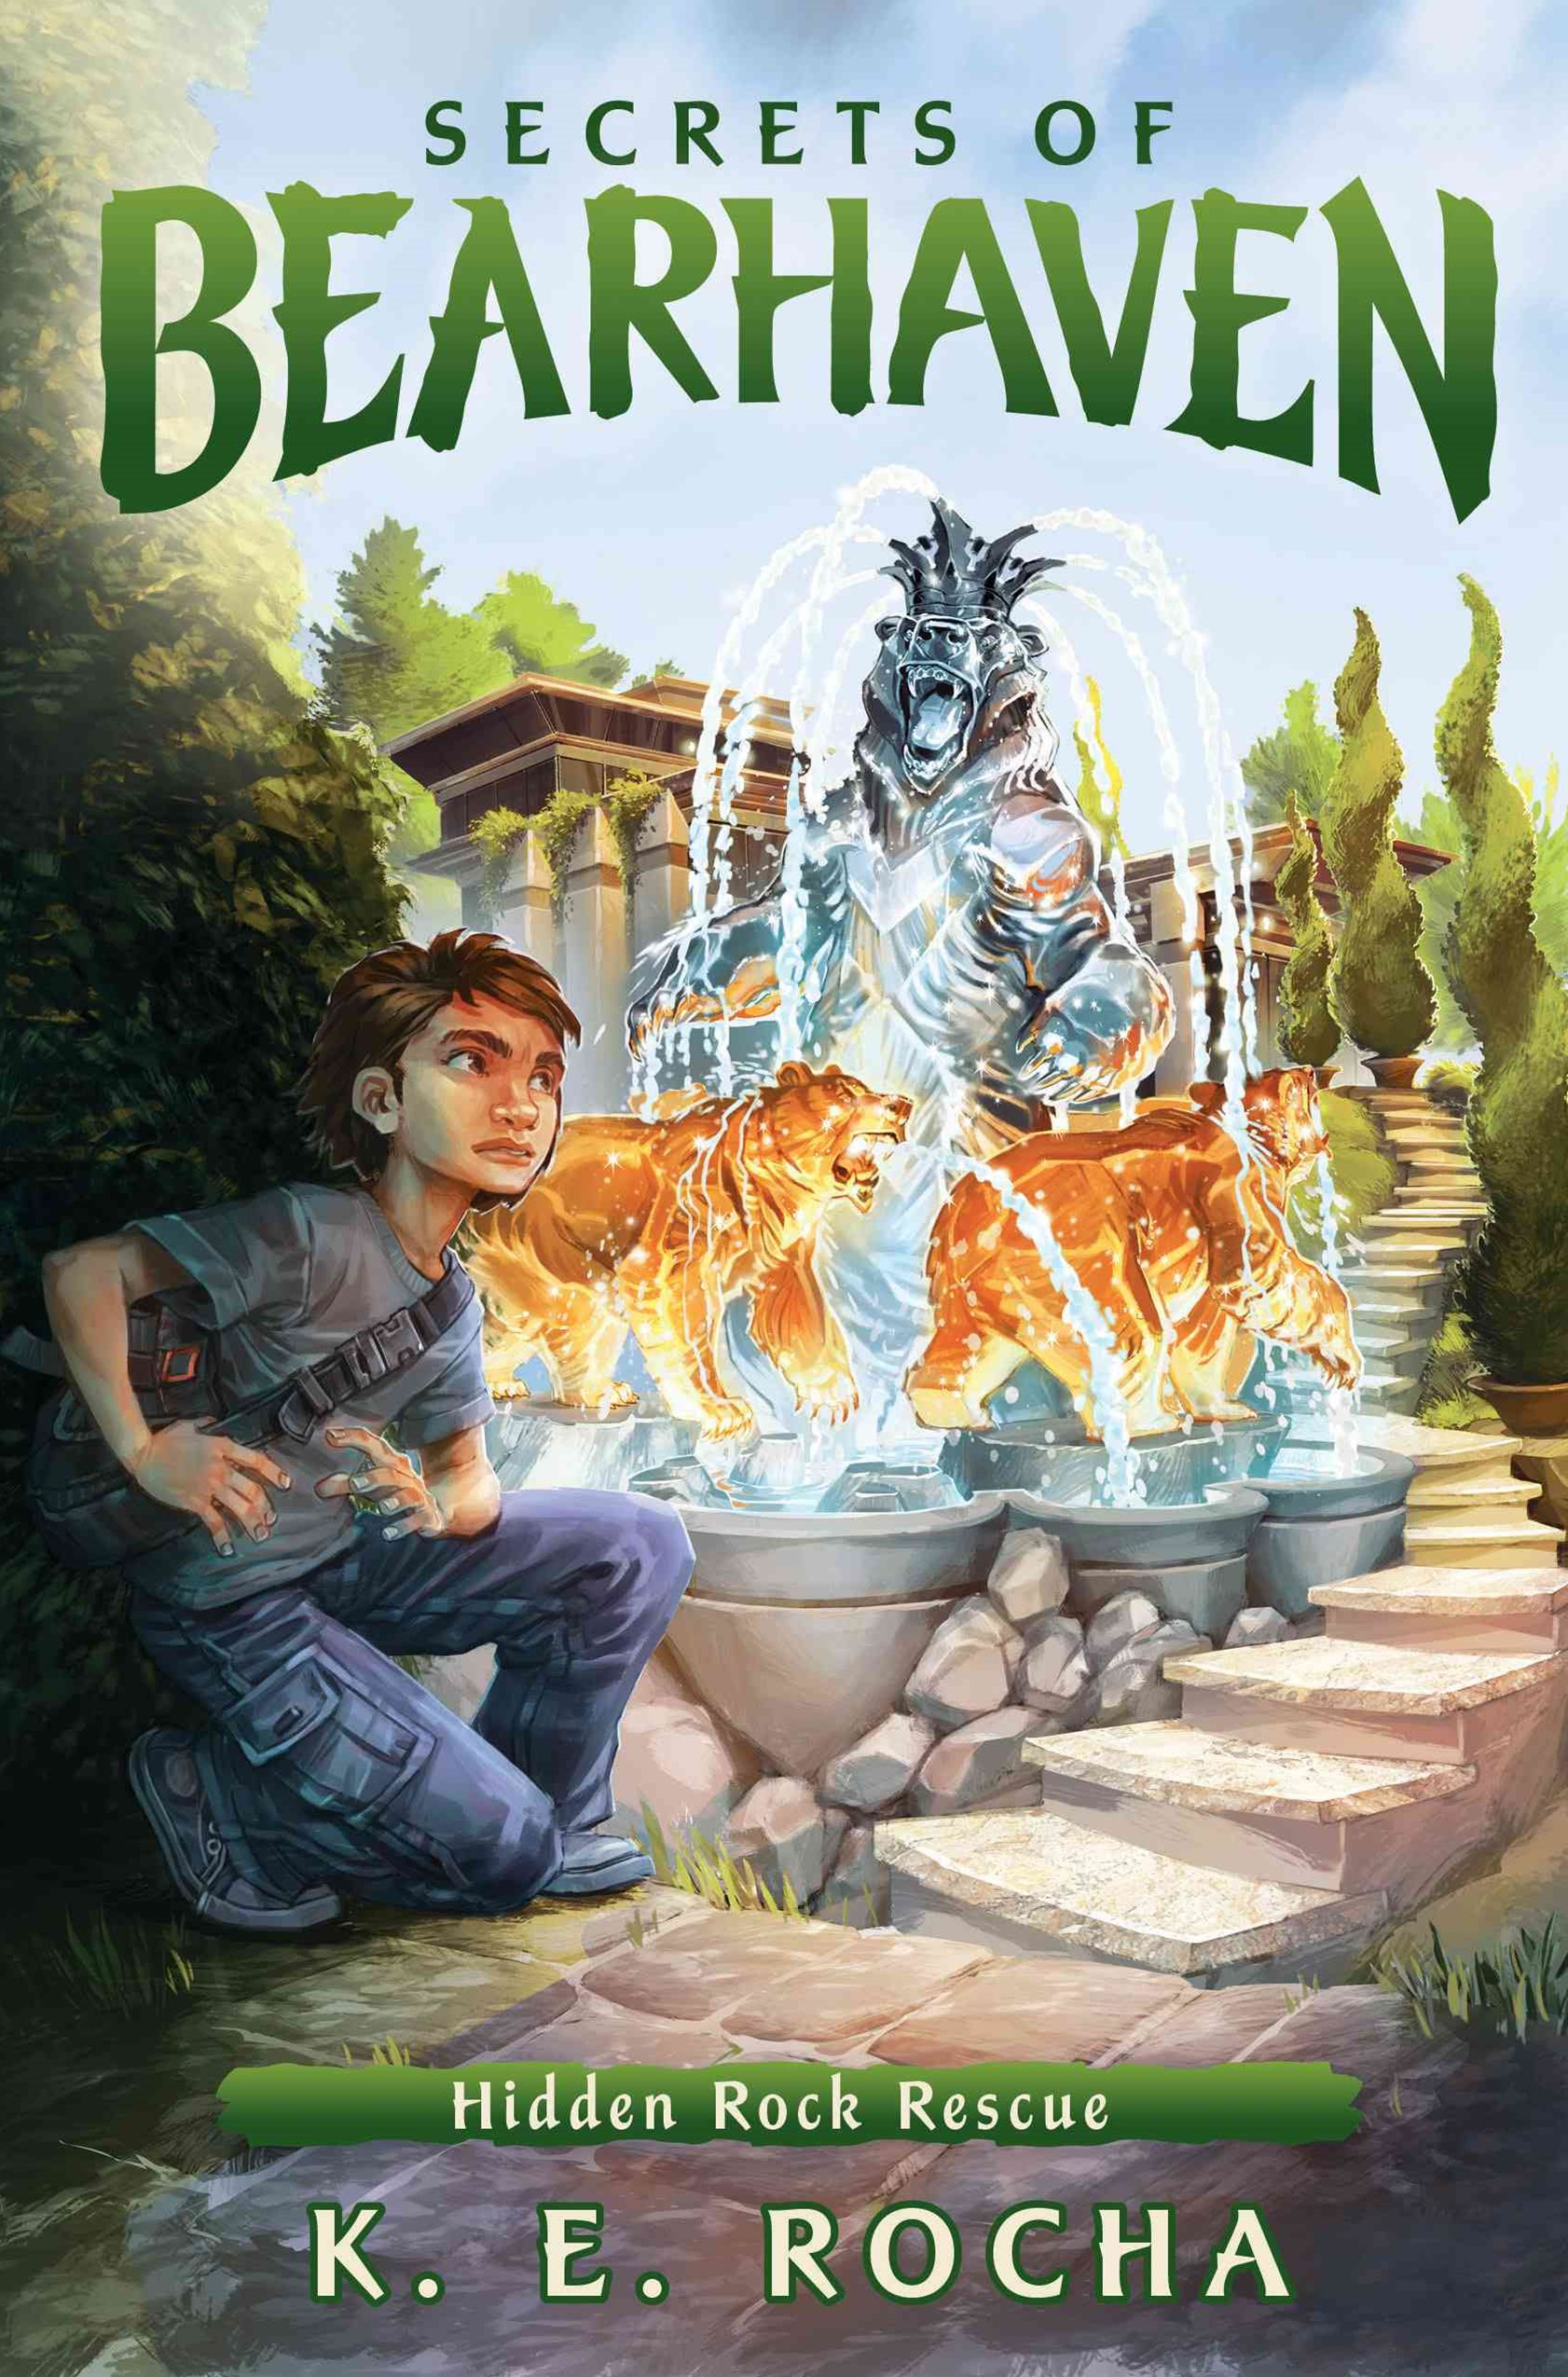 Hidden Rock Rescue (Secrets of Bearhaven #3)